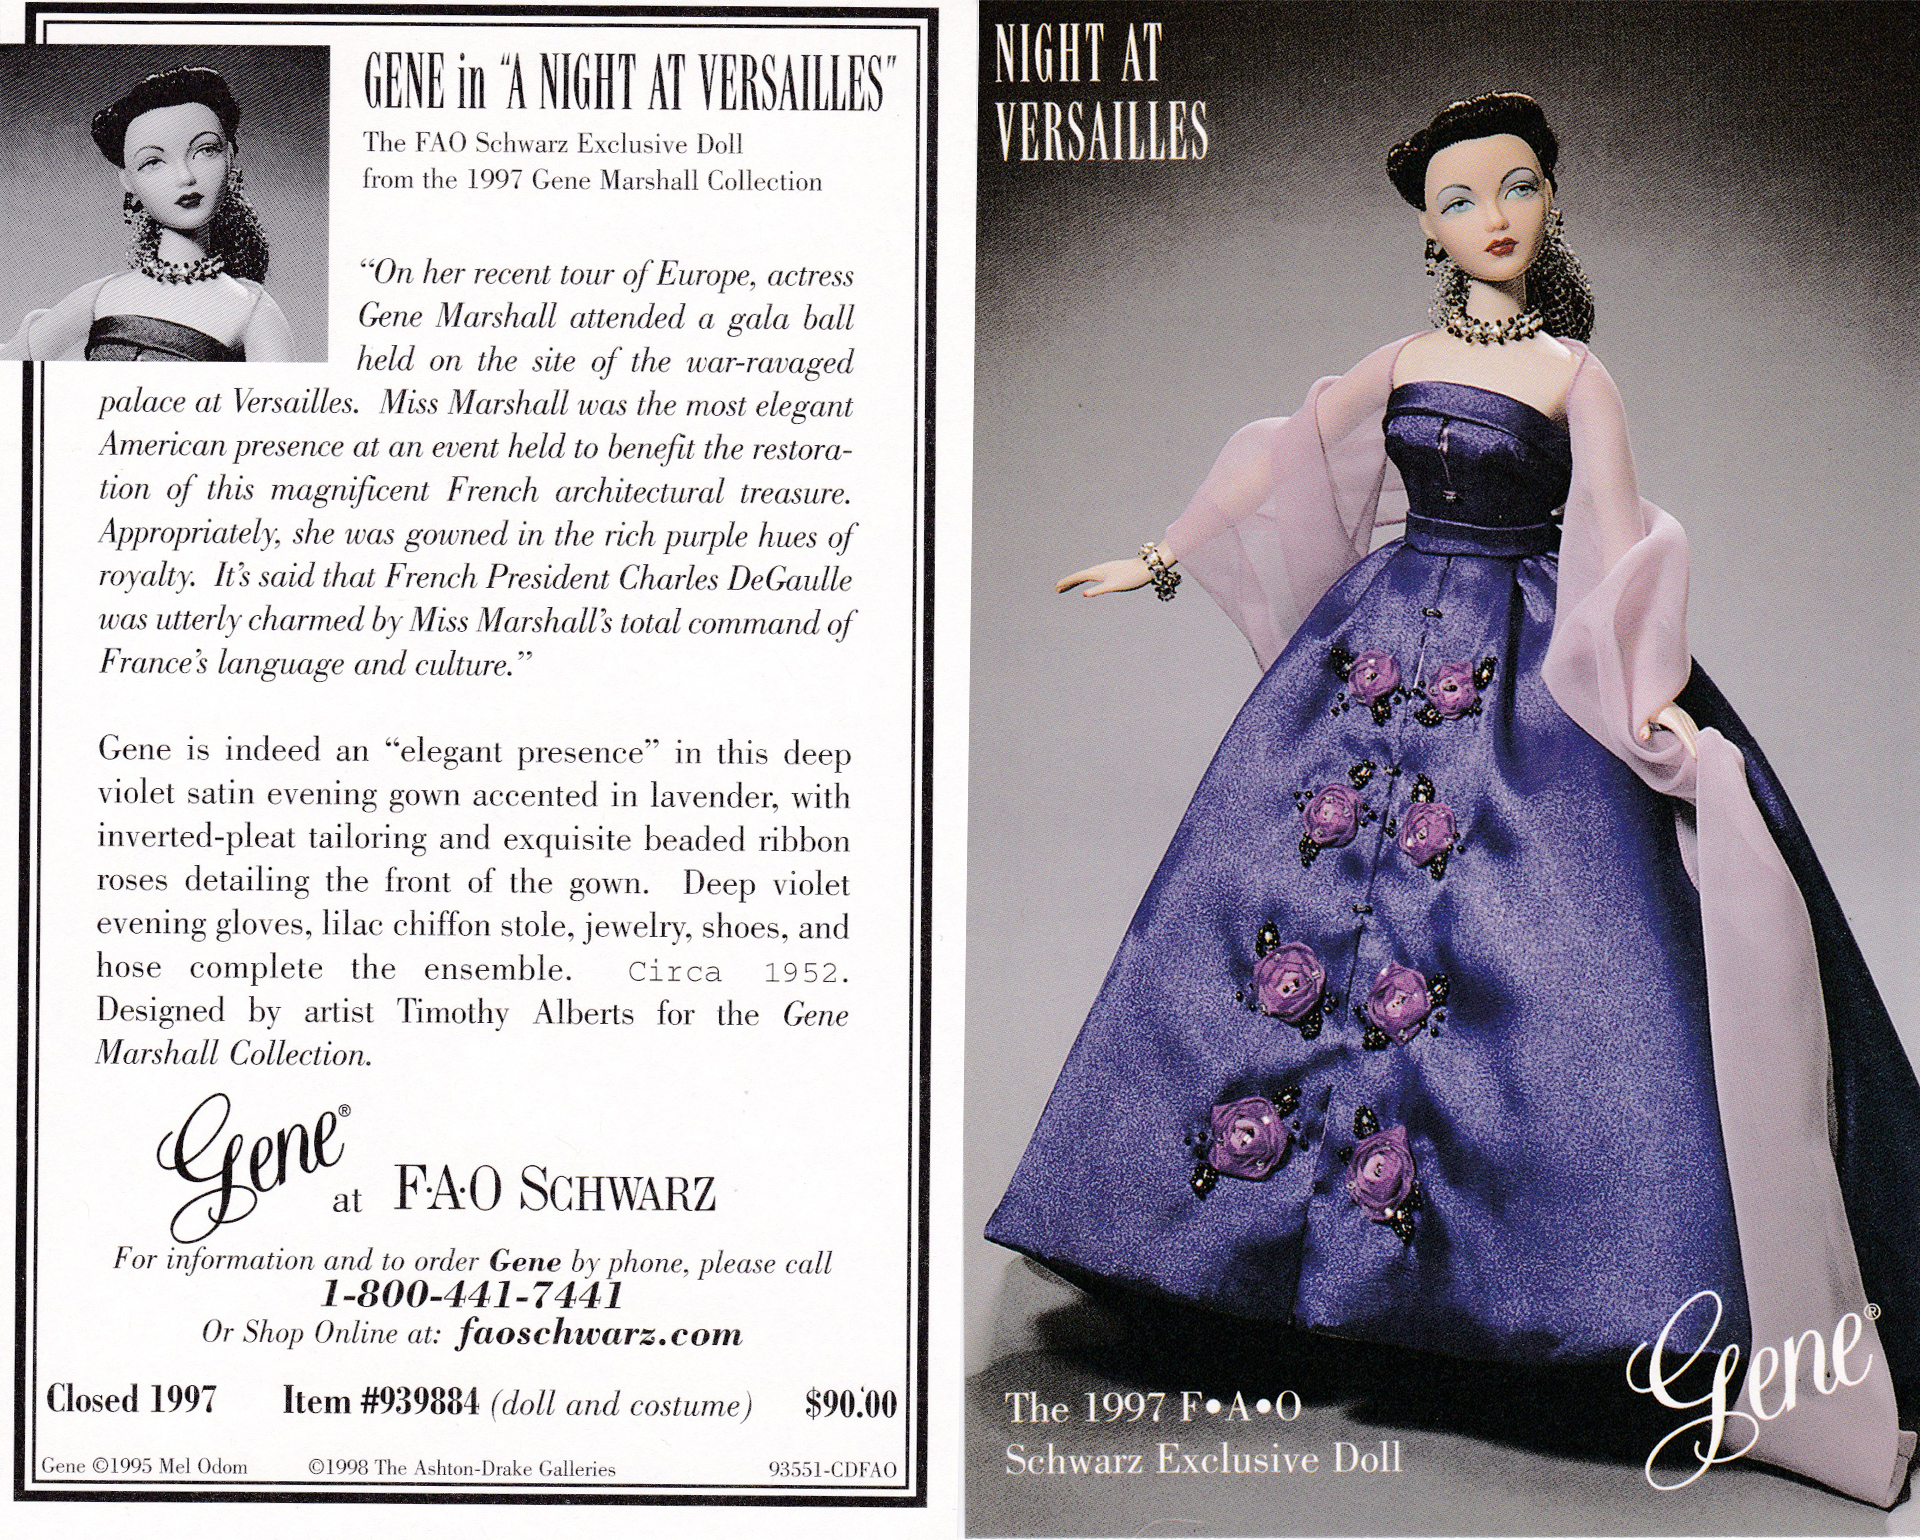 A Grand Evening pattern for Gene Marshal doll by Ashton Drake